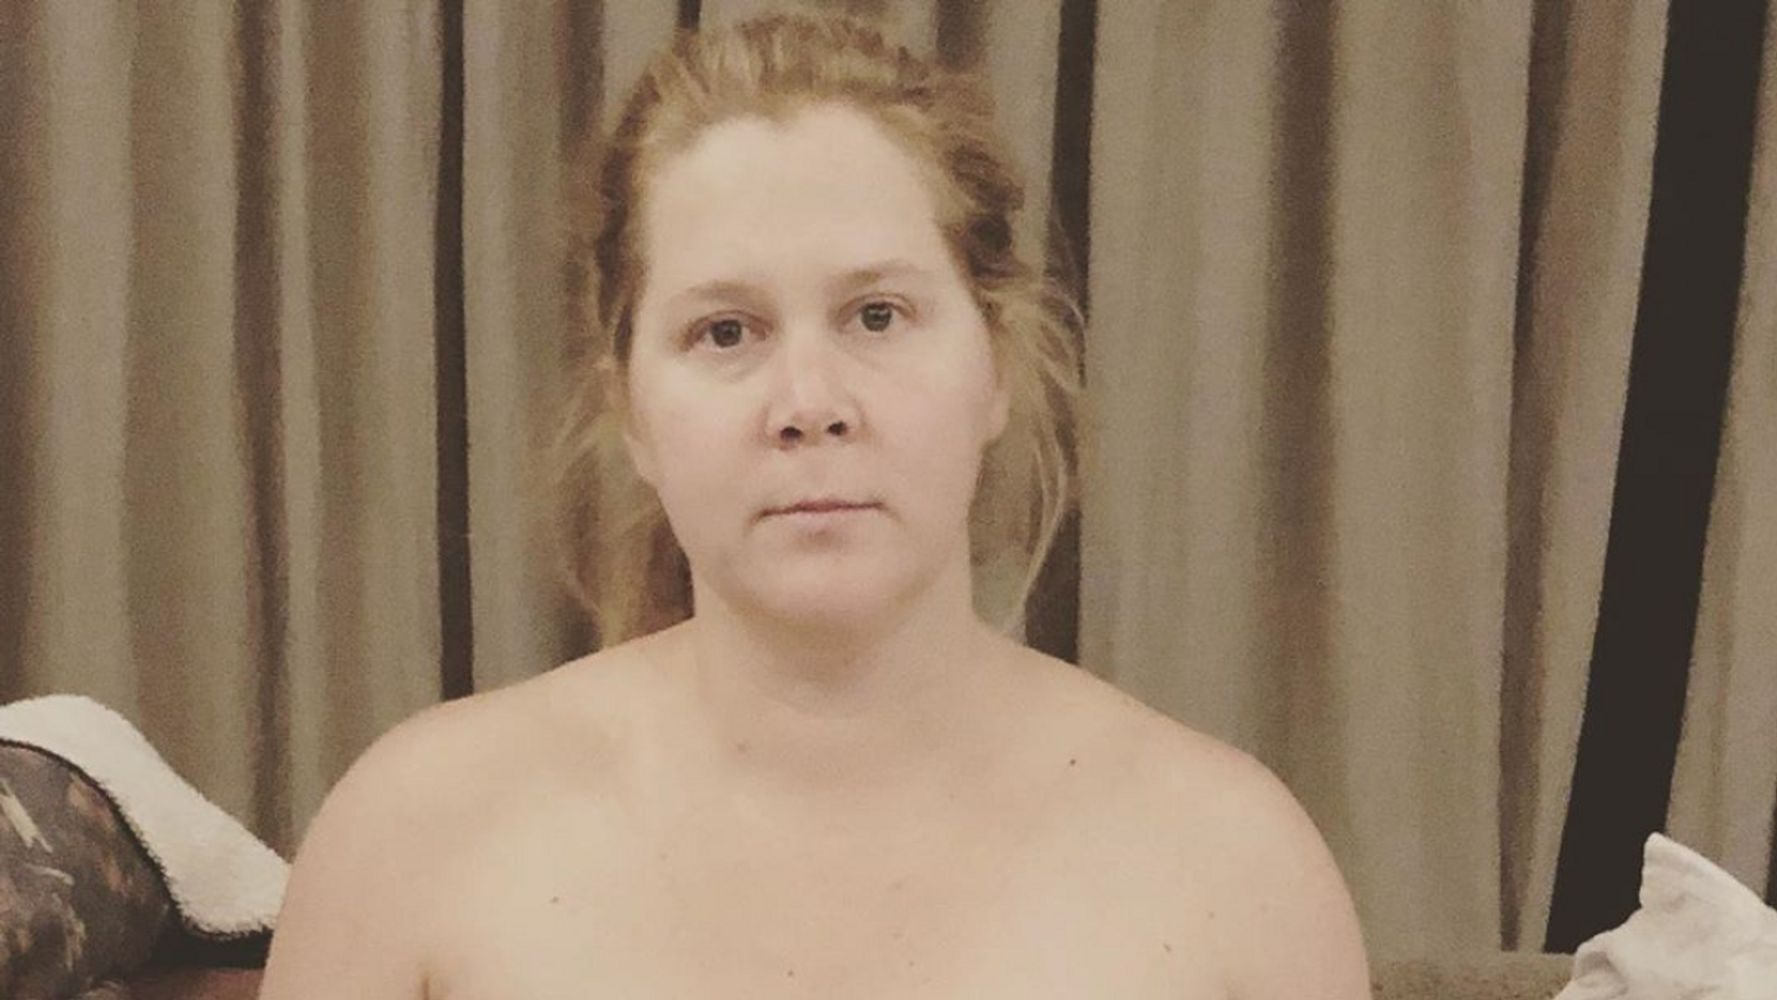 Amy Schumer Tit Pics amy schumer gets hilariously real with breast pump instagram